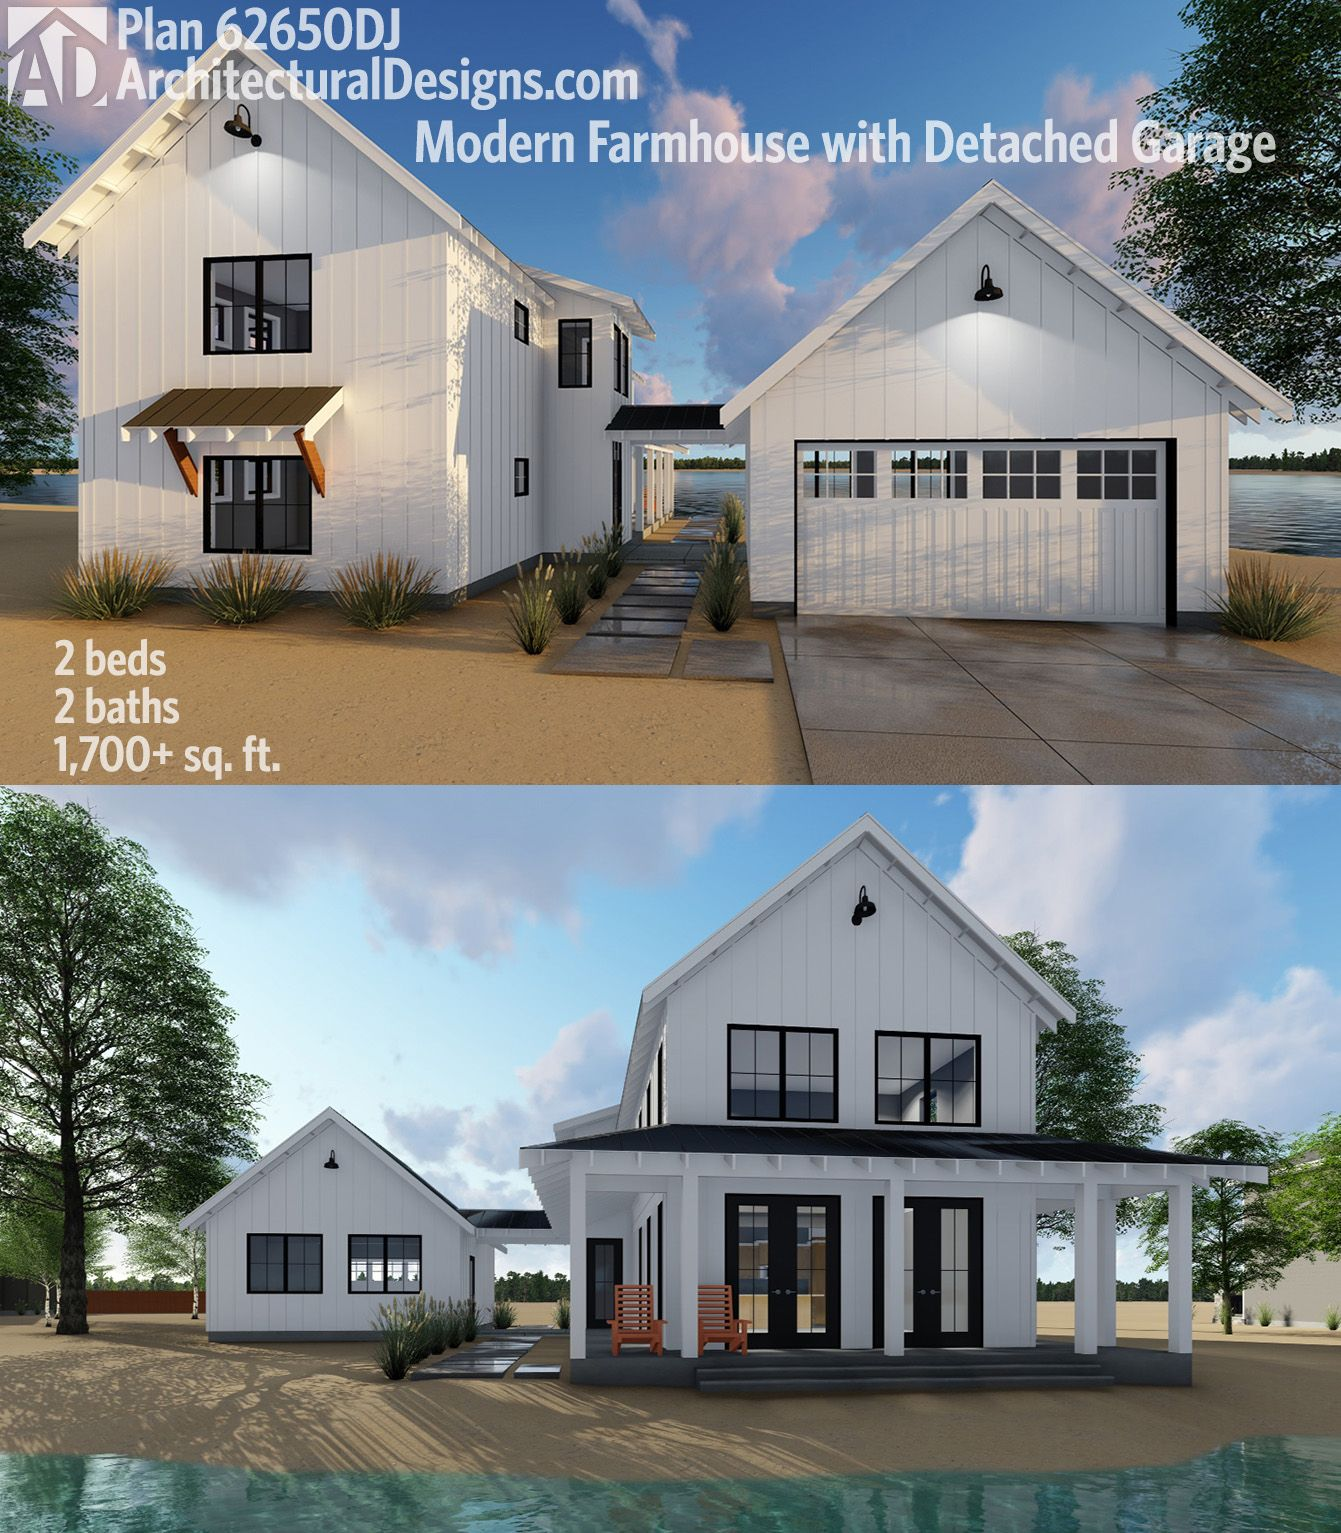 Architectural designs modern farmhouse plan 62650dj 2 for Small modern farmhouse